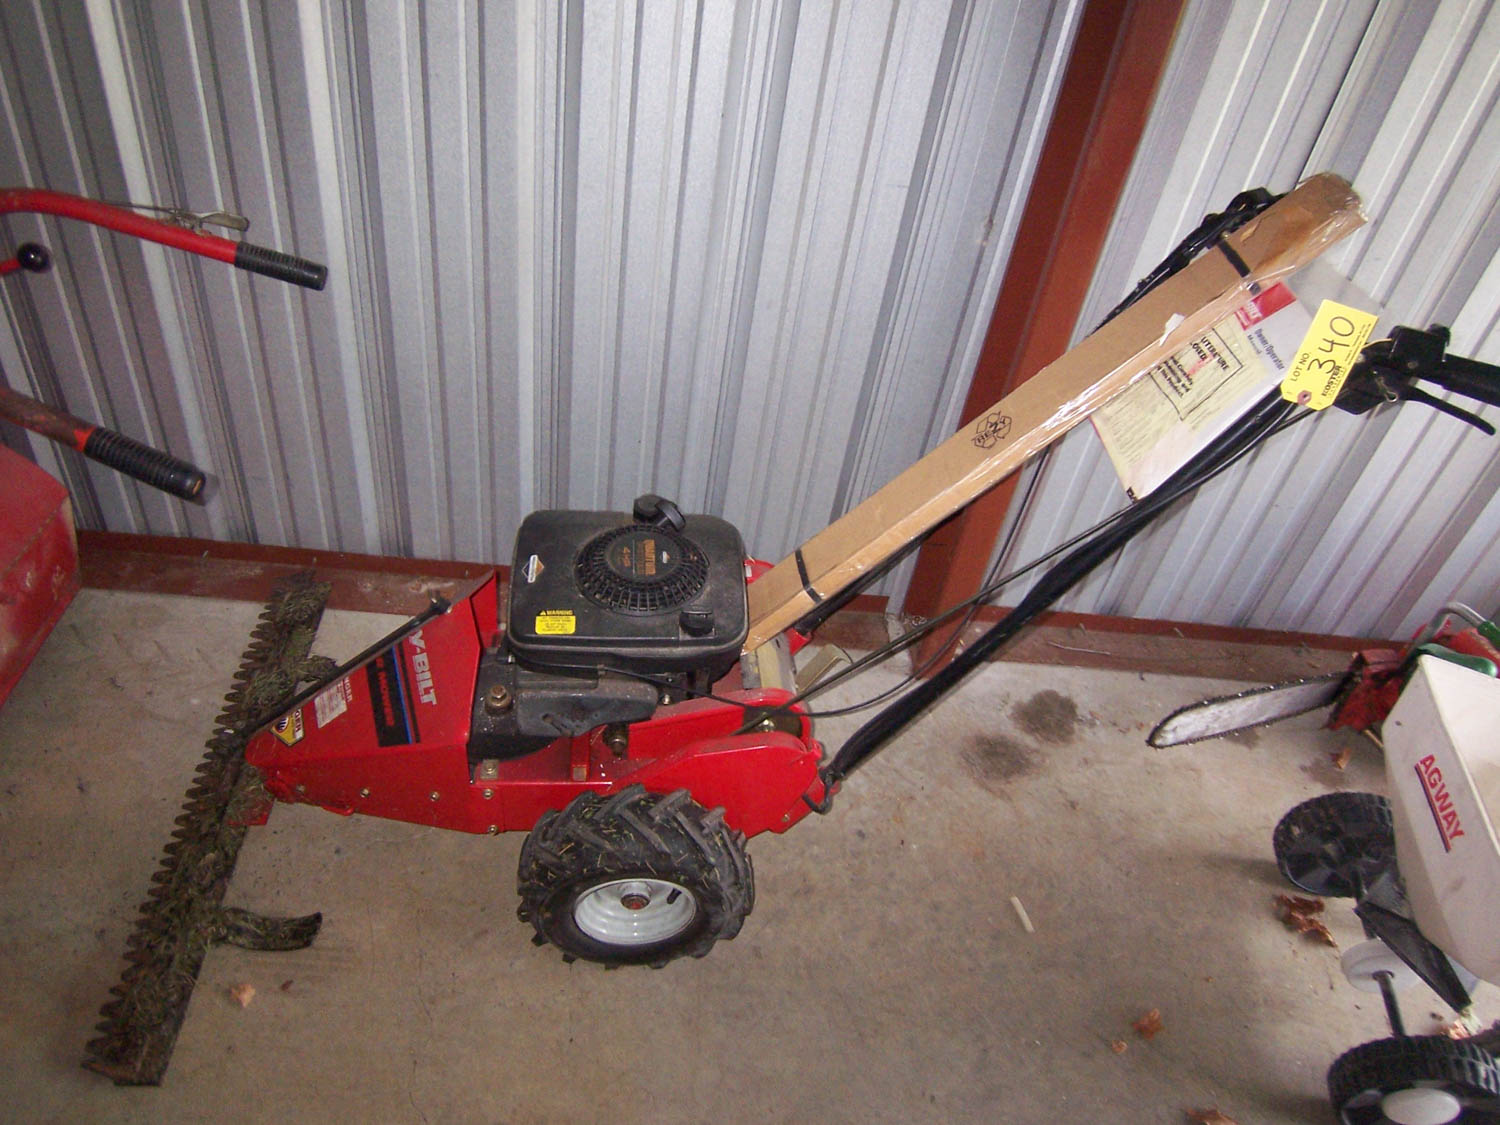 TROY BILT SICKLE BAR MOWER